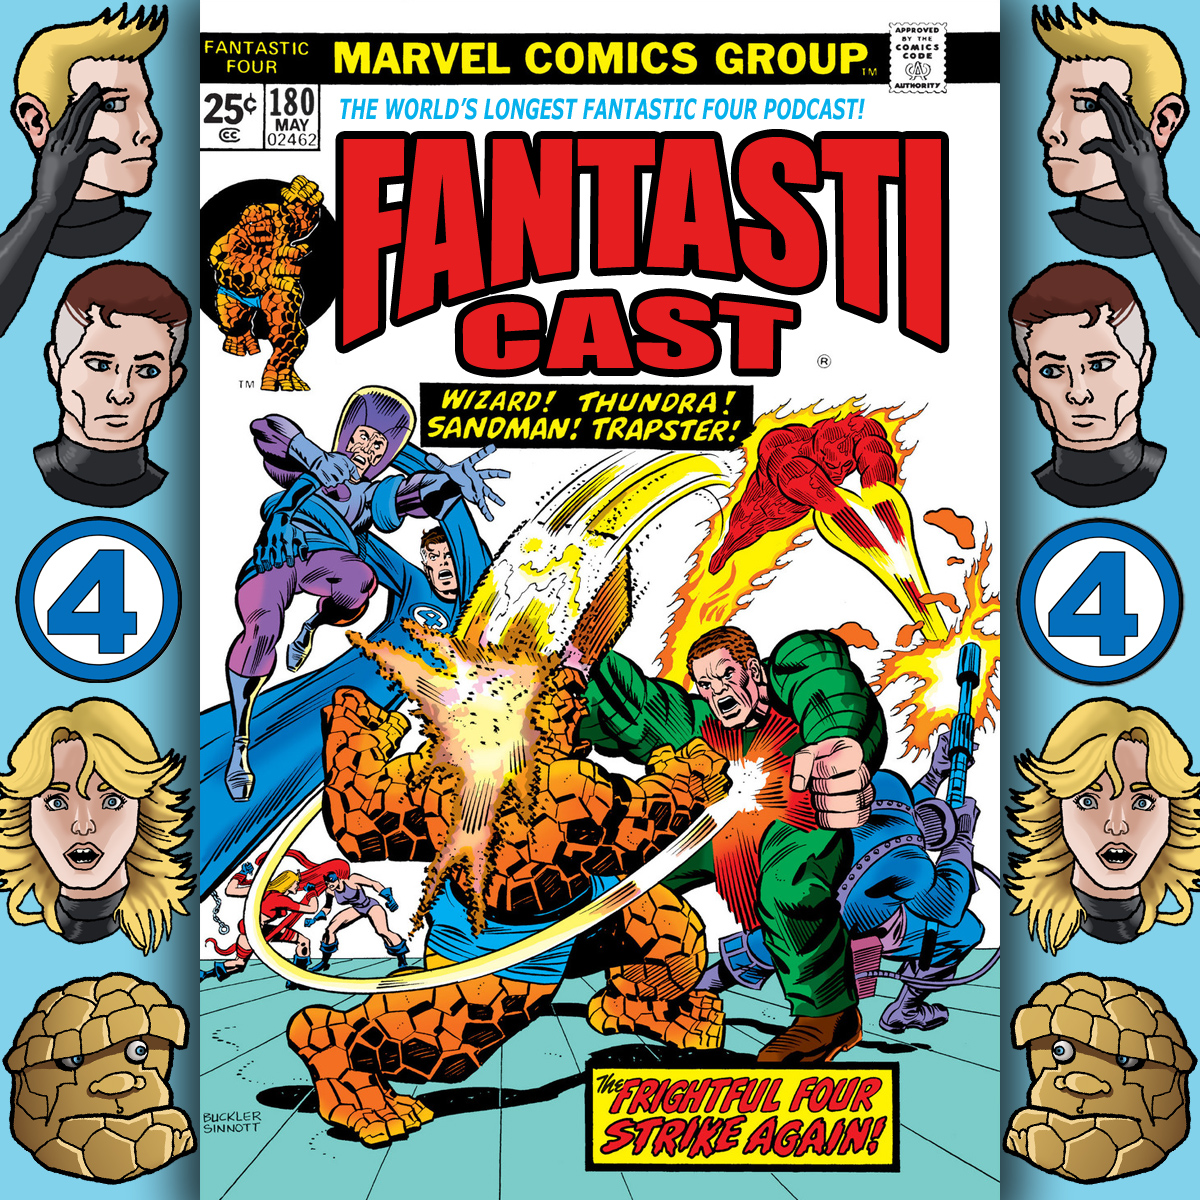 Episode 180: Fantastic Four #148 - War On The Thirty-Sixth Floor